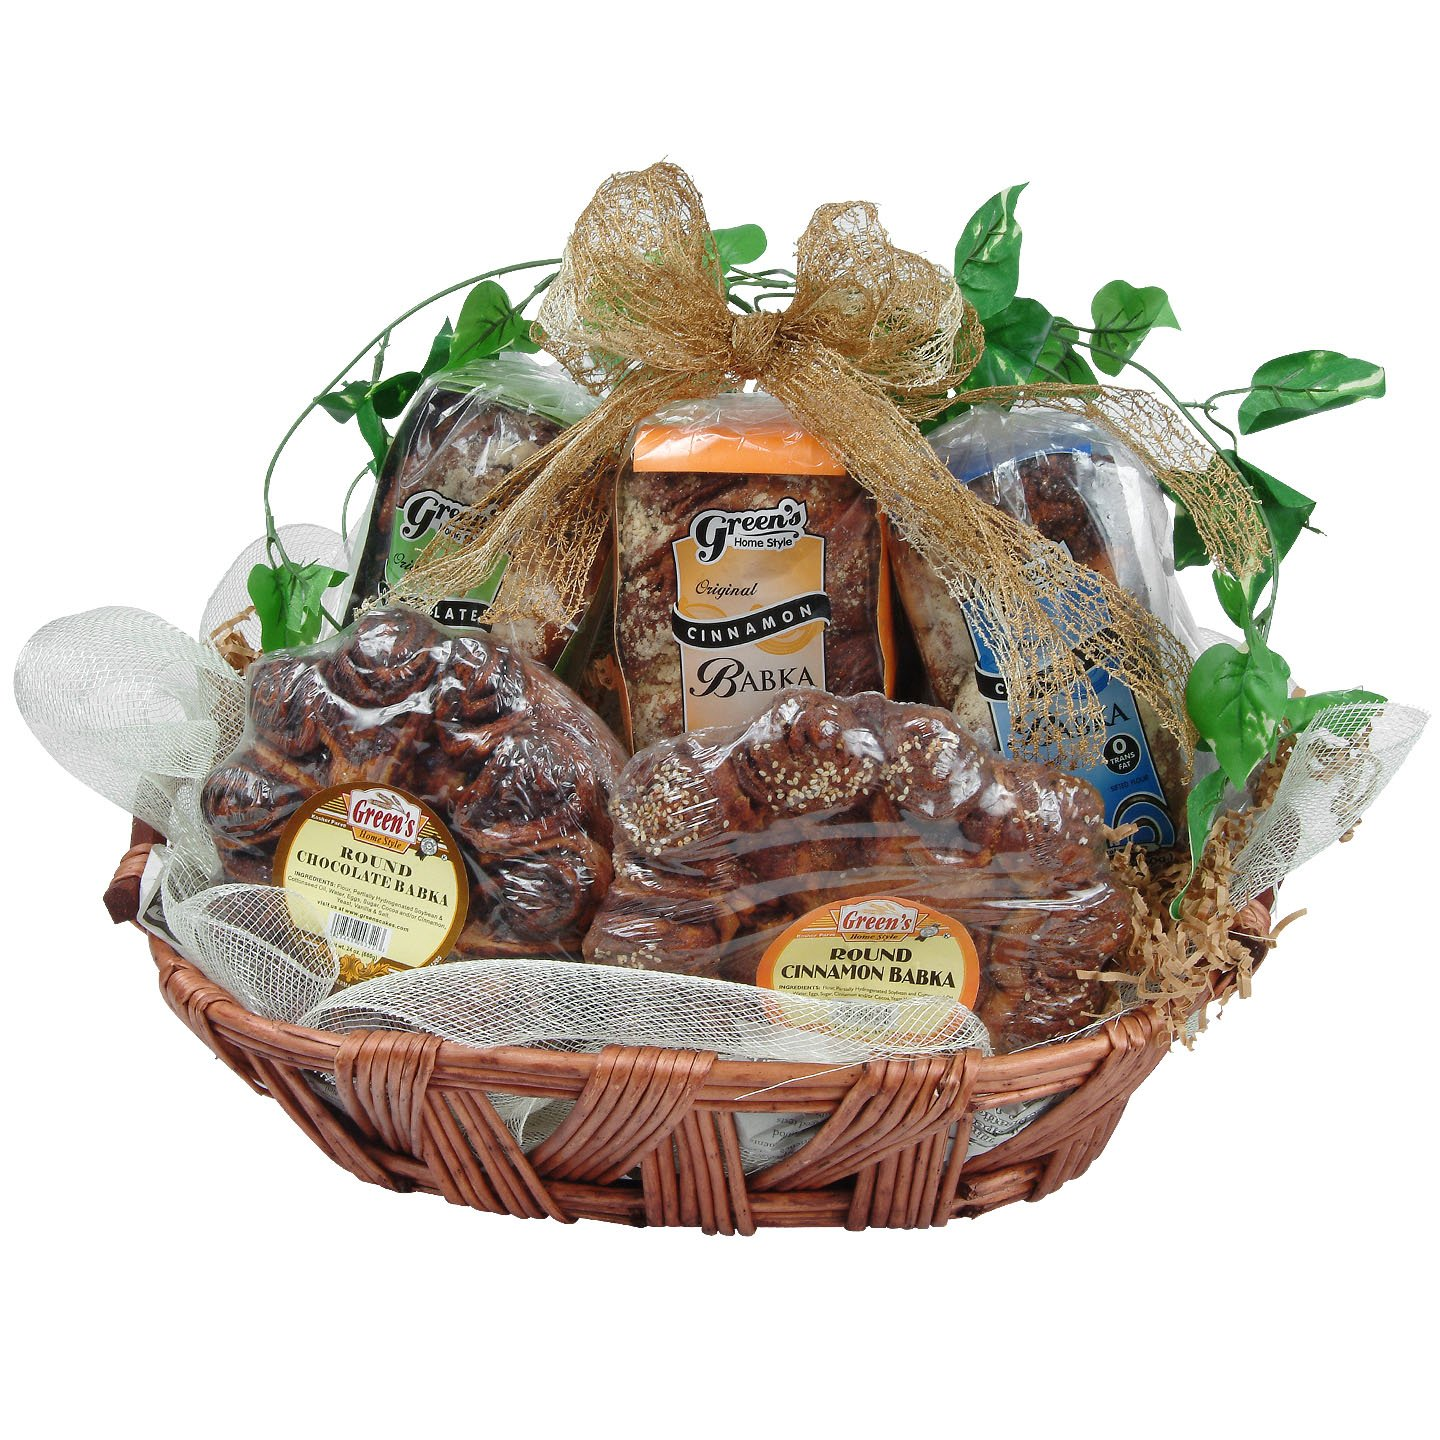 Wow Chanukah Gourmet Food Gift Basket by Greens Babka